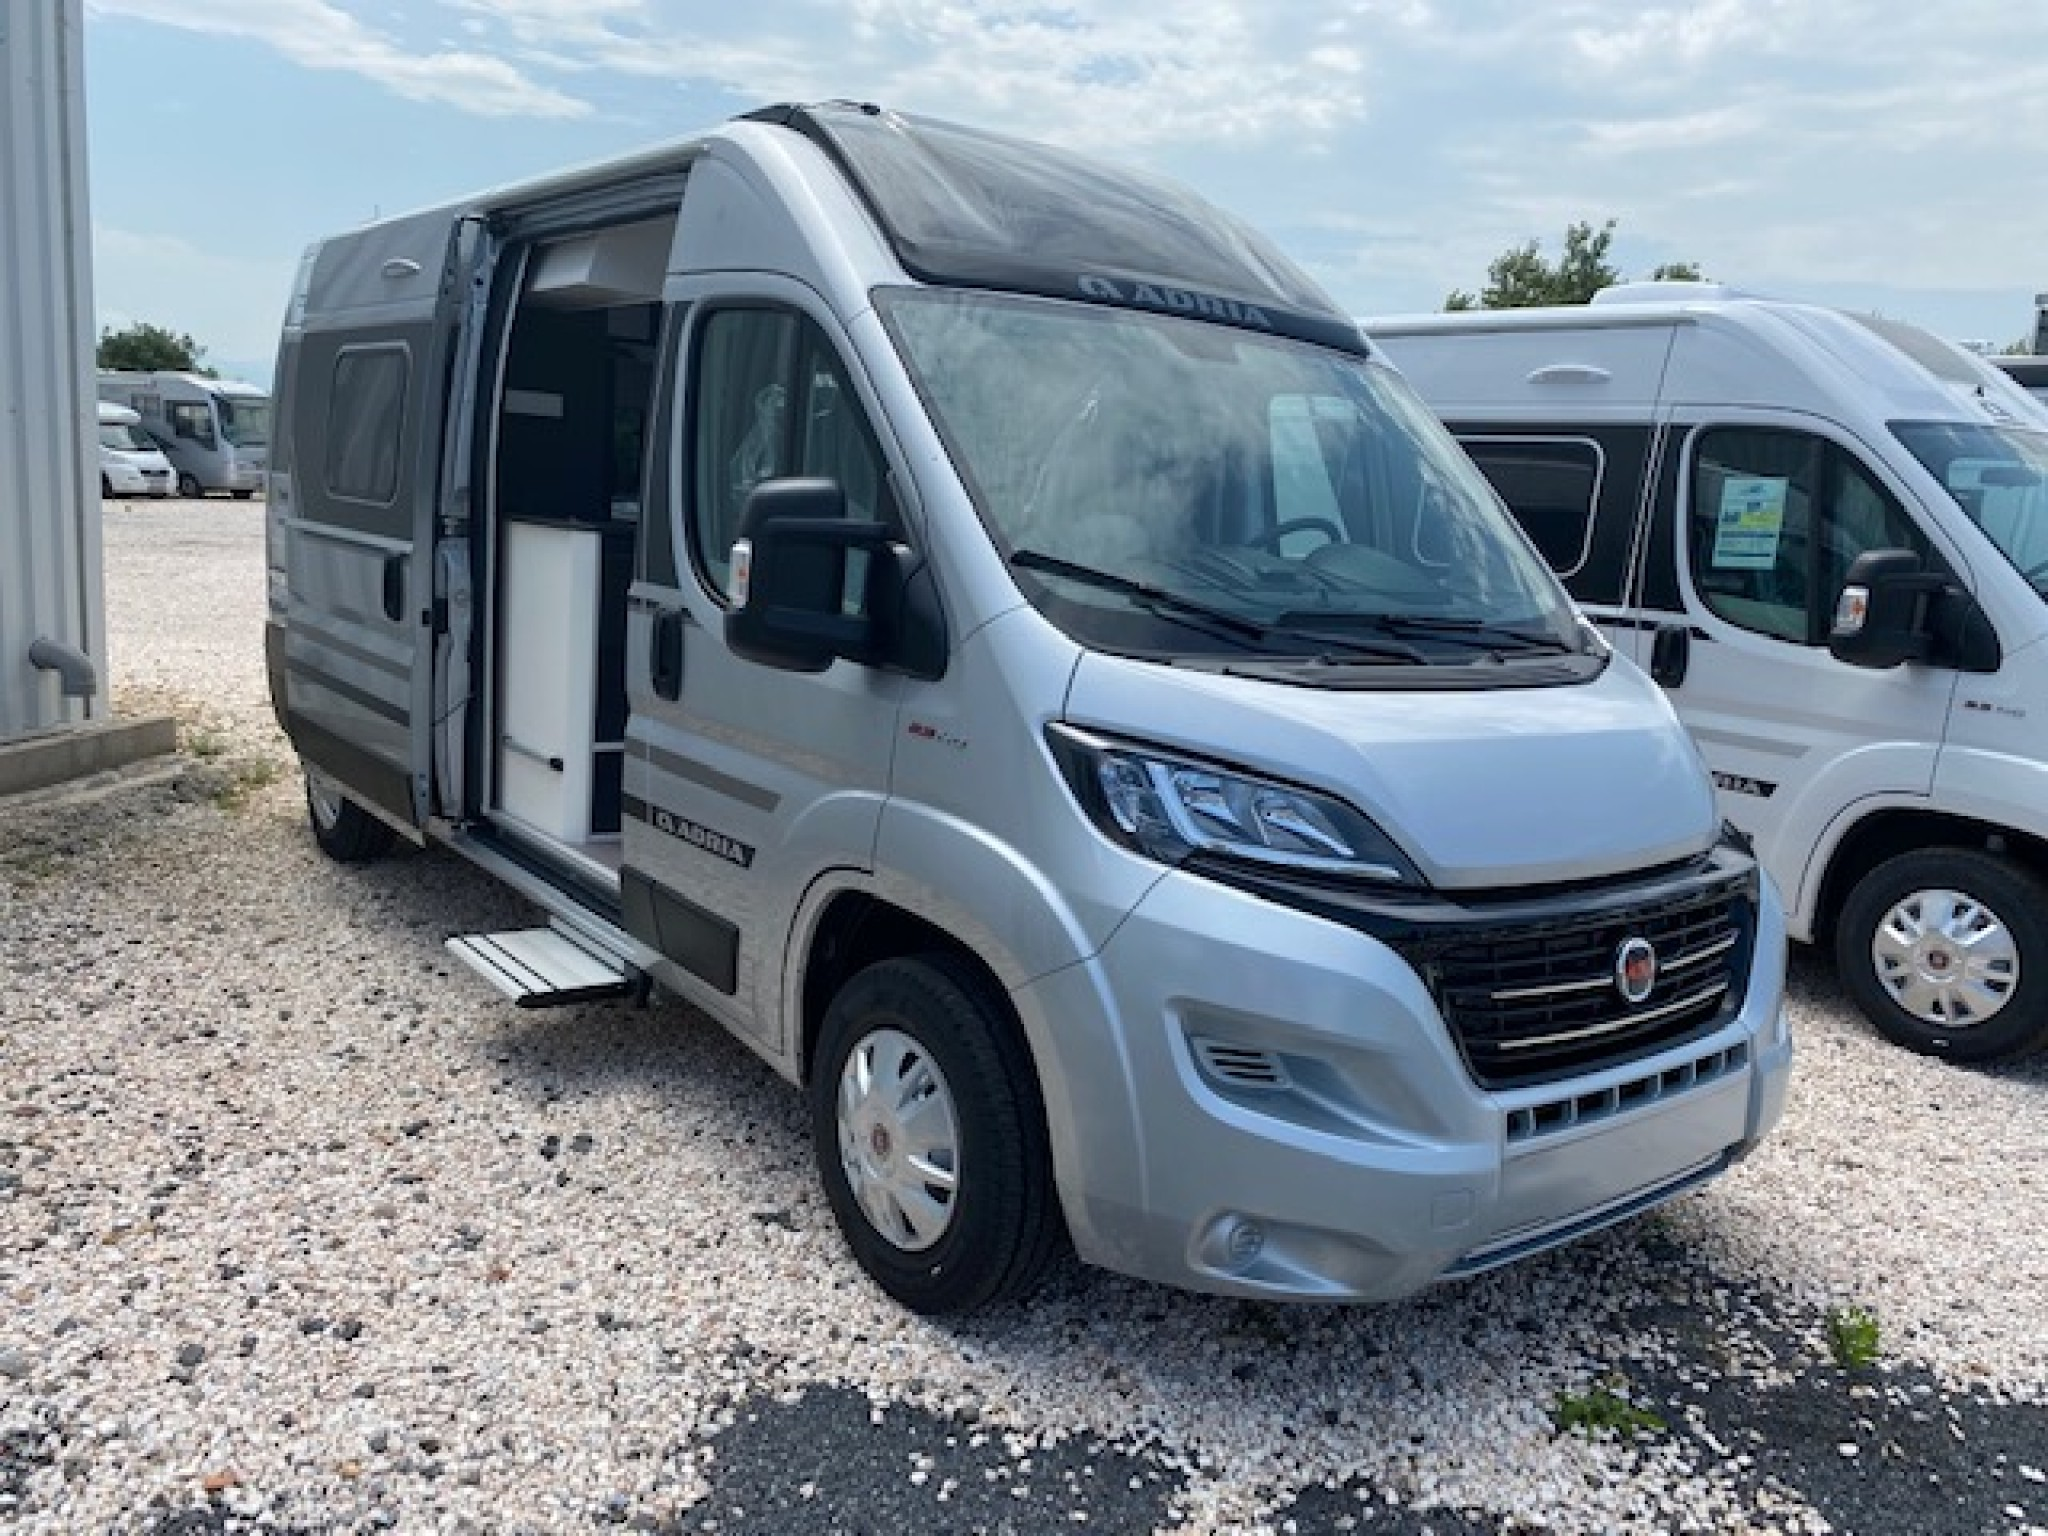 Camping-car ADRIA TWIN SUPREME 600 SPB